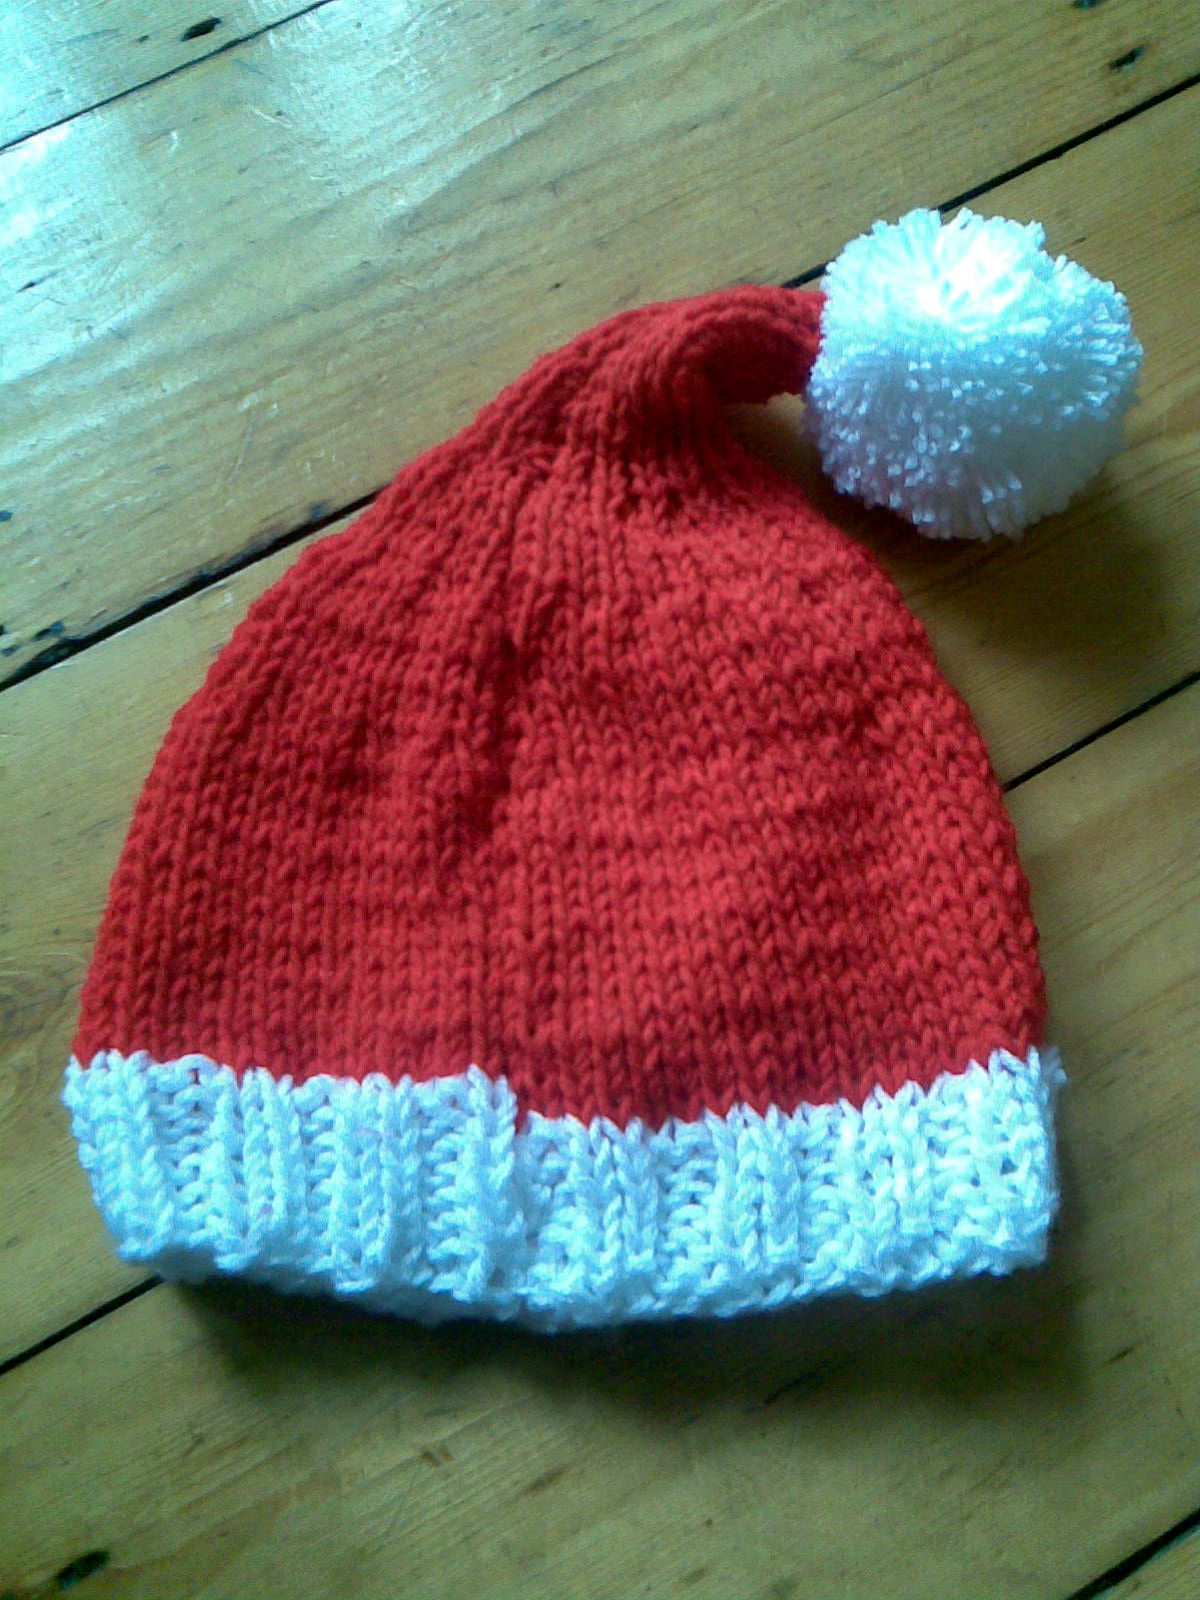 Knitting Patterns For Santa Hats : Musings of a knit-a-holic from Wales: Knitting Pattern: Santa hat